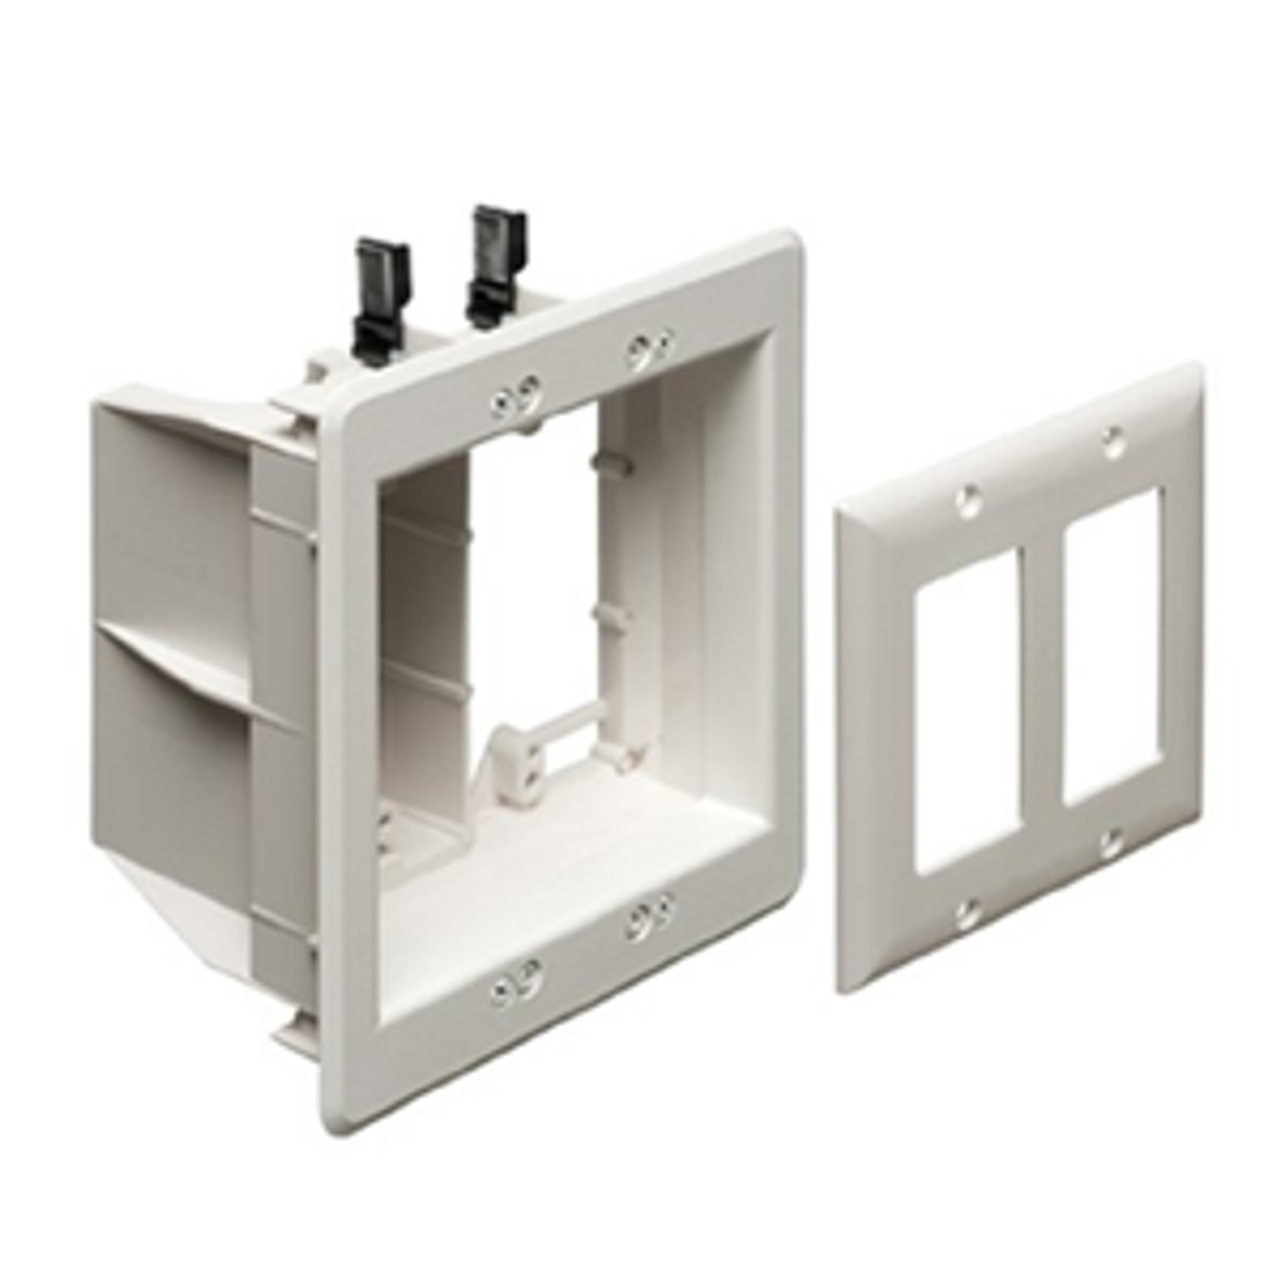 Recessed Electrical Box Wall Plate Power /& Low Voltage